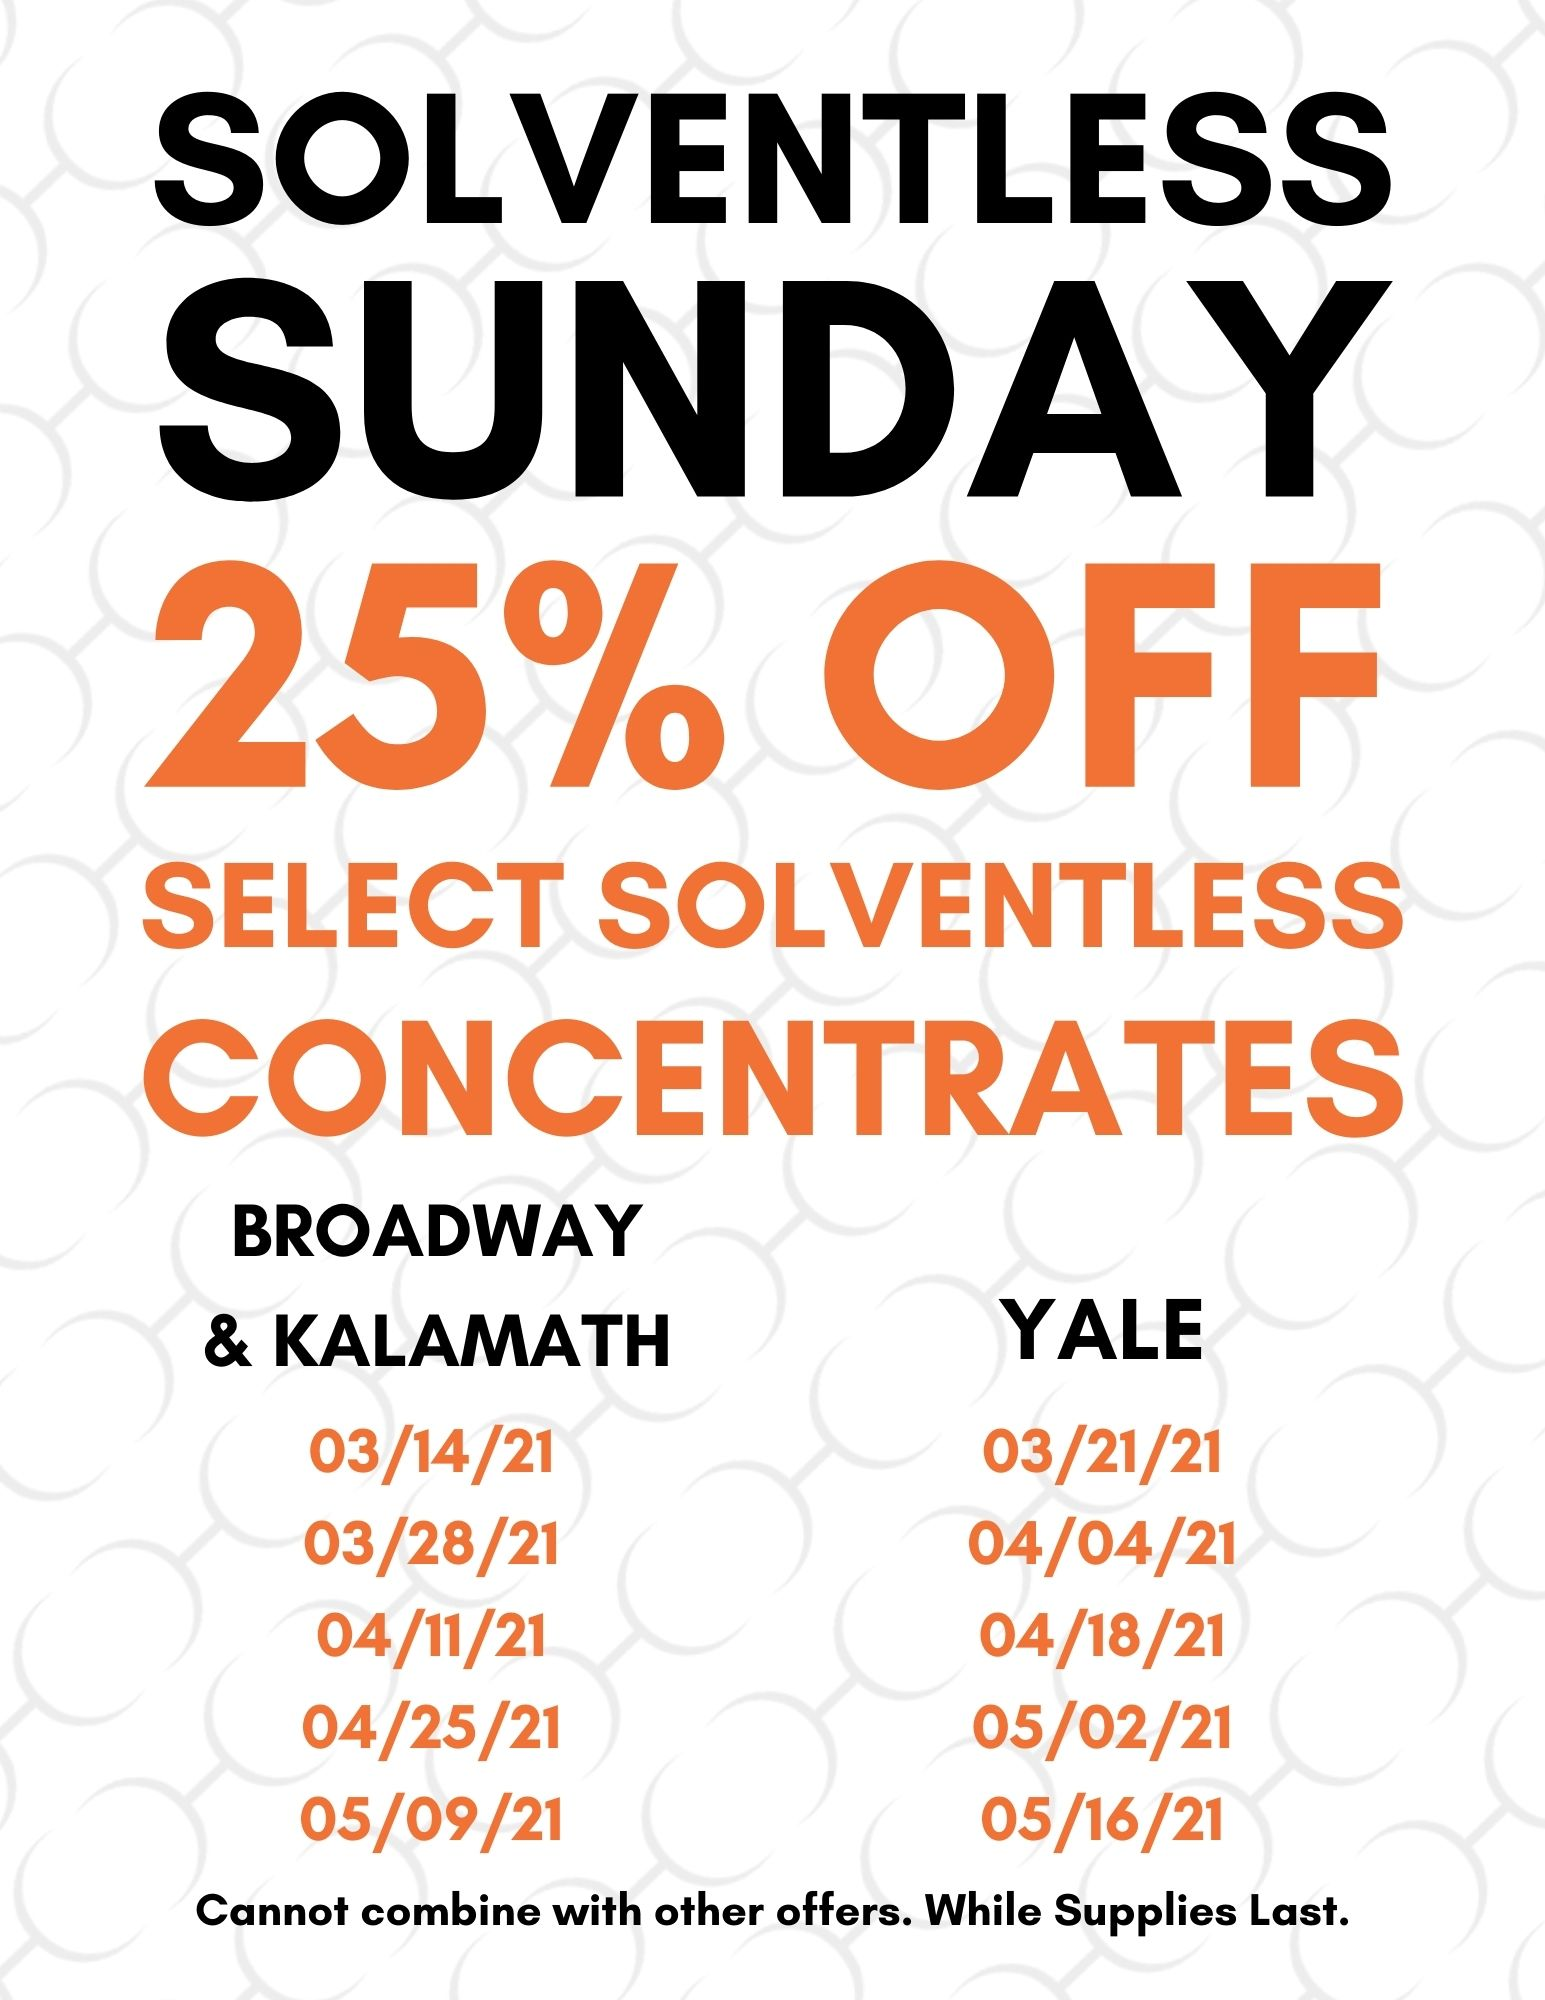 Solventless Sunday Schedule 01.06.21